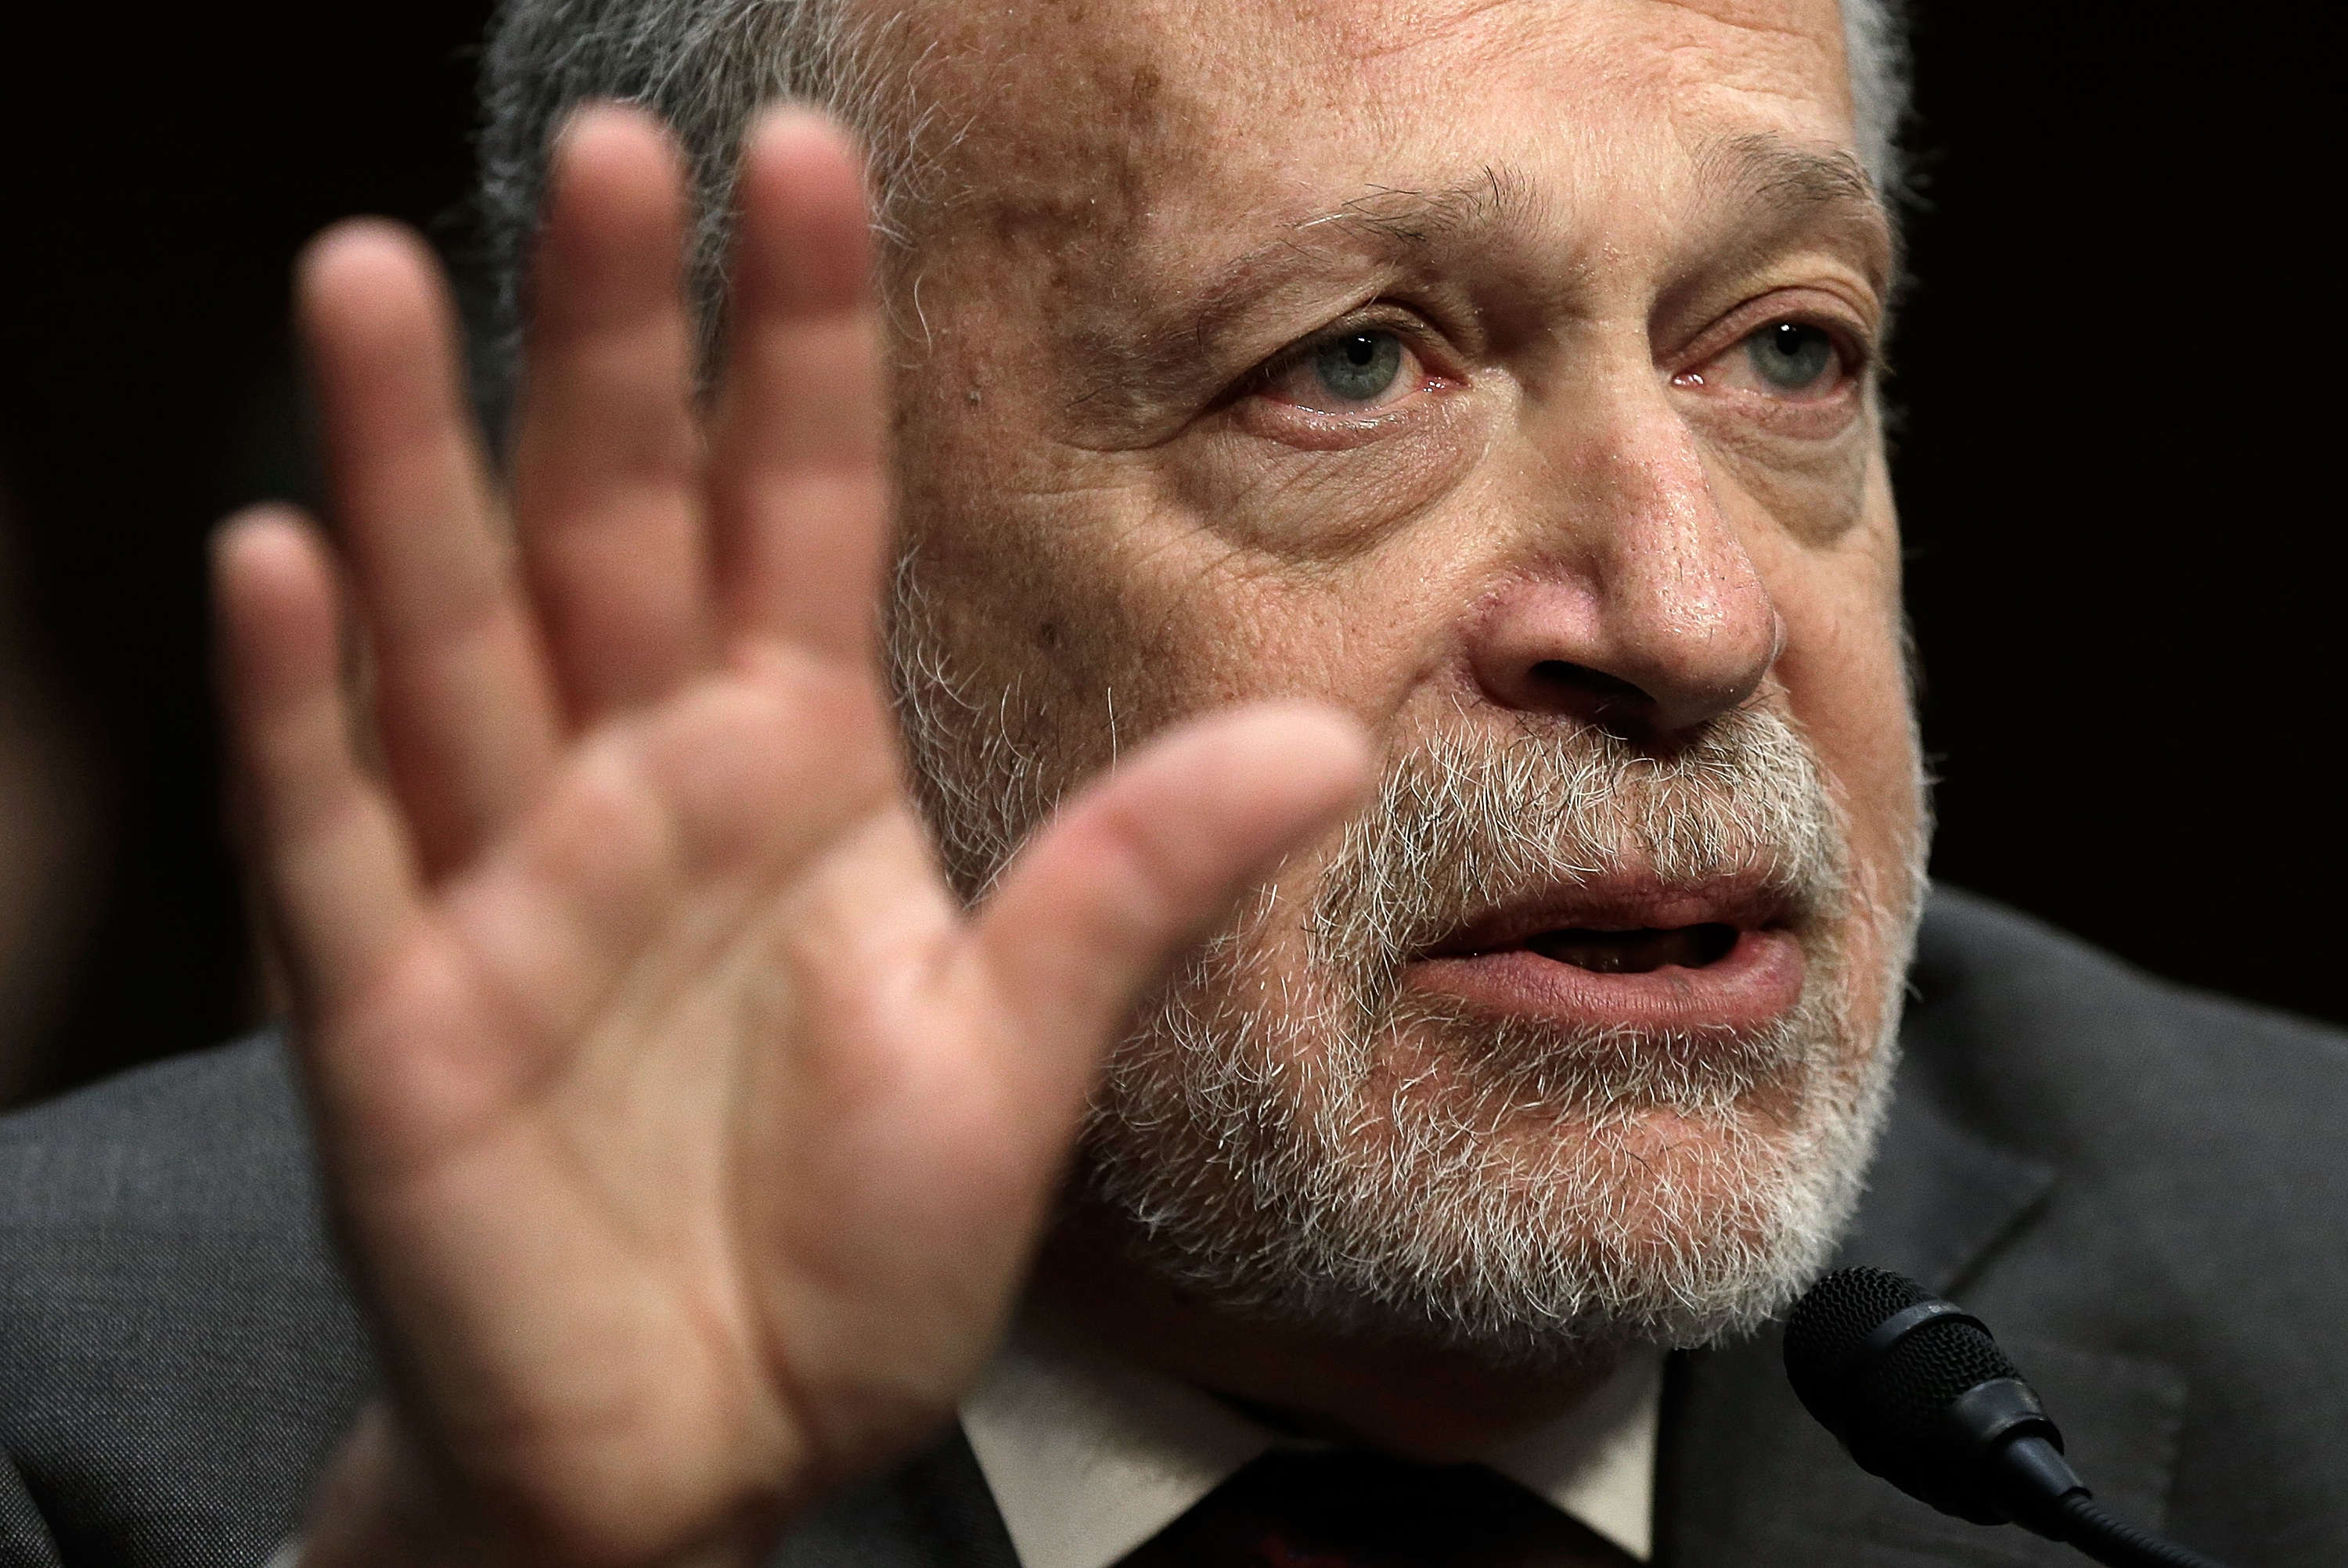 Former U.S. Labor Secretary Robert Reich testifies before the Joint Economic Committee January 16, 2014 in Washington, DC. (Photo: Win McNamee/Getty Images)